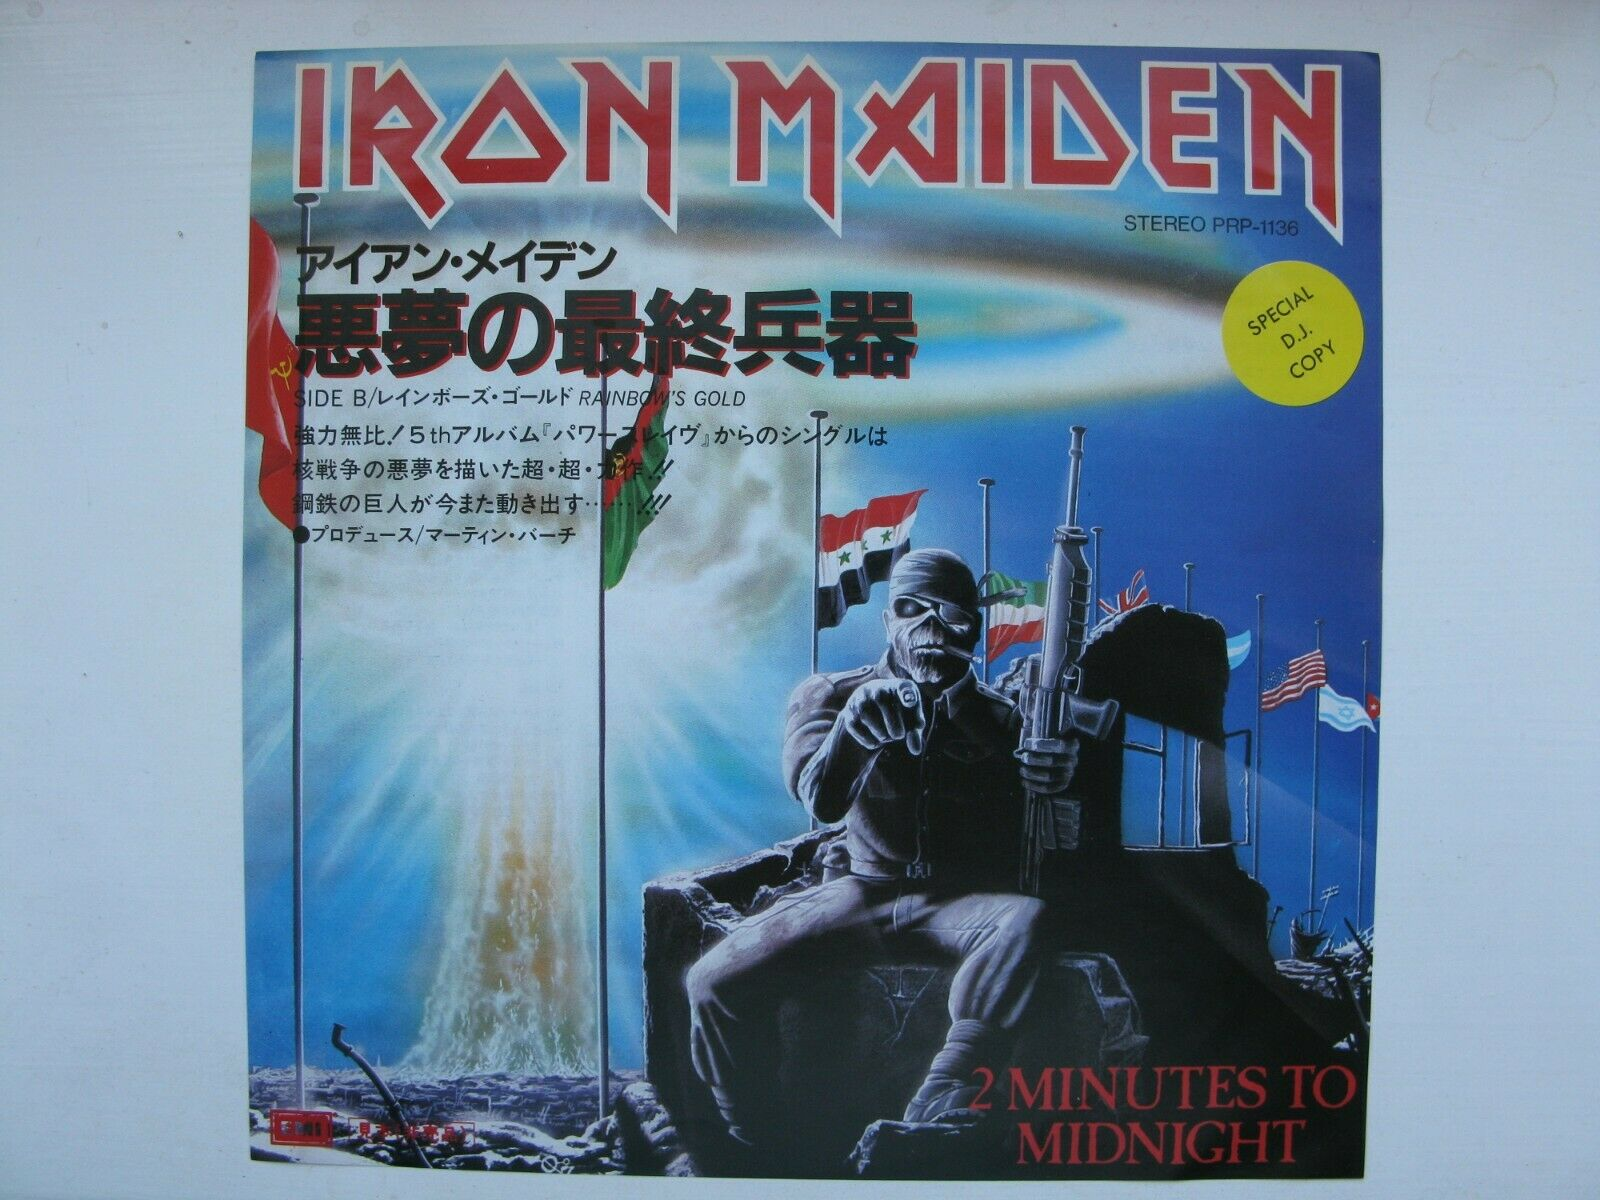 IRON MAIDEN -  2 MINUTES TO MIDNIGHT JAPAN DJ PROMO 7 INCH - LEGENDARY RARE ITEM